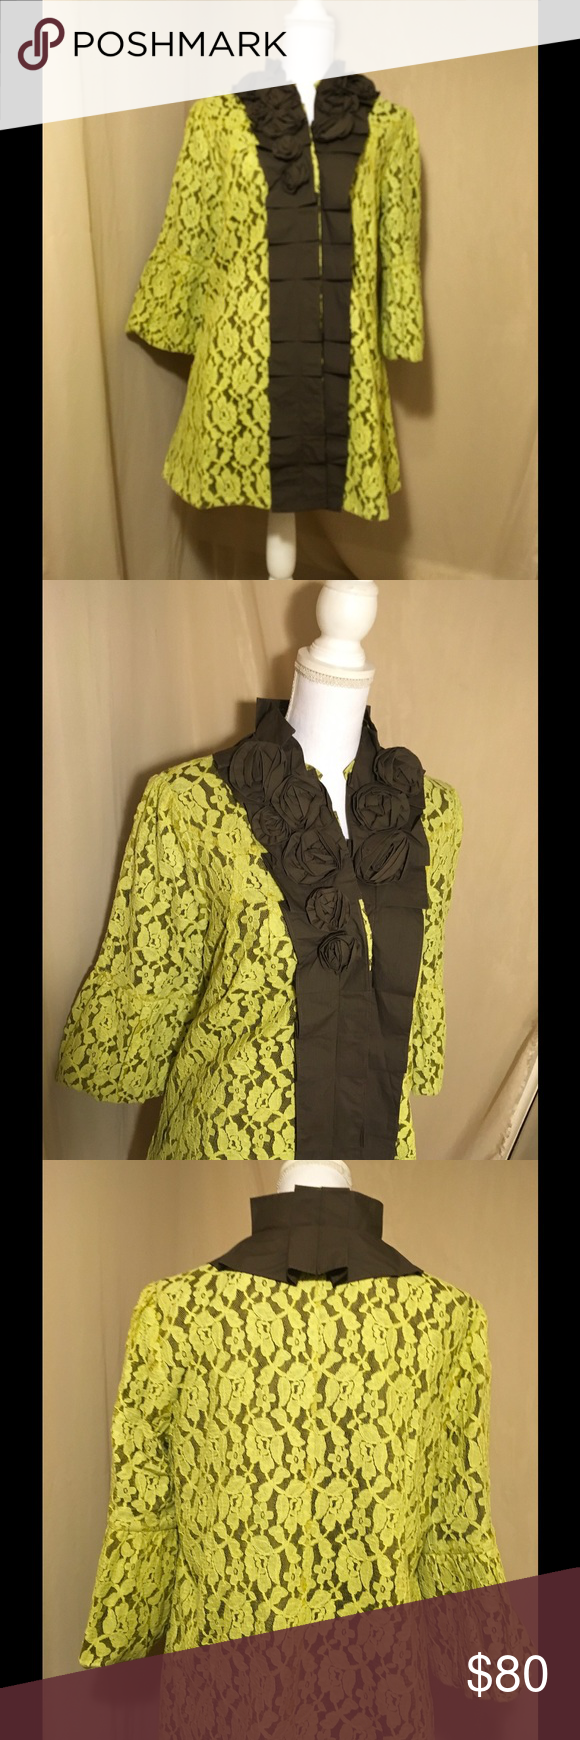 """Stunning Green/Brown Ruffles Coat By Ryu Elegant Ryu coat, Overlay Lace fully lined, with ample Ruffles and dramatic Sleeves, sides pockets Ruffled neckline, three button front, large measure: 20"""" armpit to armpit, 33"""" length Medium measure: 18"""" armpit to armpit, 32"""" length, Small measure: 16"""" armpit to armpit, self 70% Cotton, 30% polyester, lining 100% cotton. Ryu Jackets & Coats"""